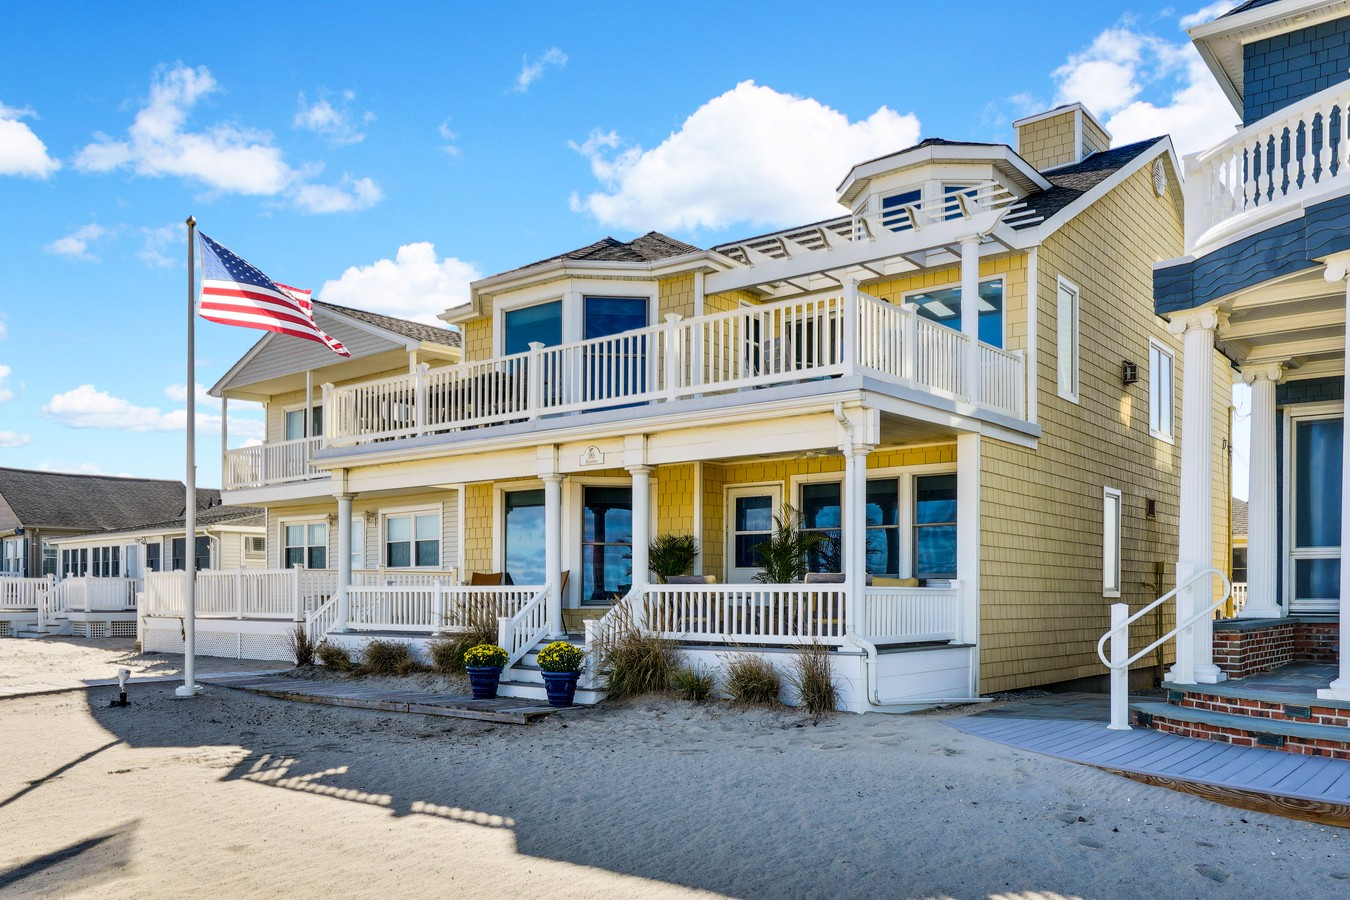 Multi-Family Home for Sale at One of the Jewels of Manasquan Beach 385 Beachfront Manasquan, New Jersey 08736 United States